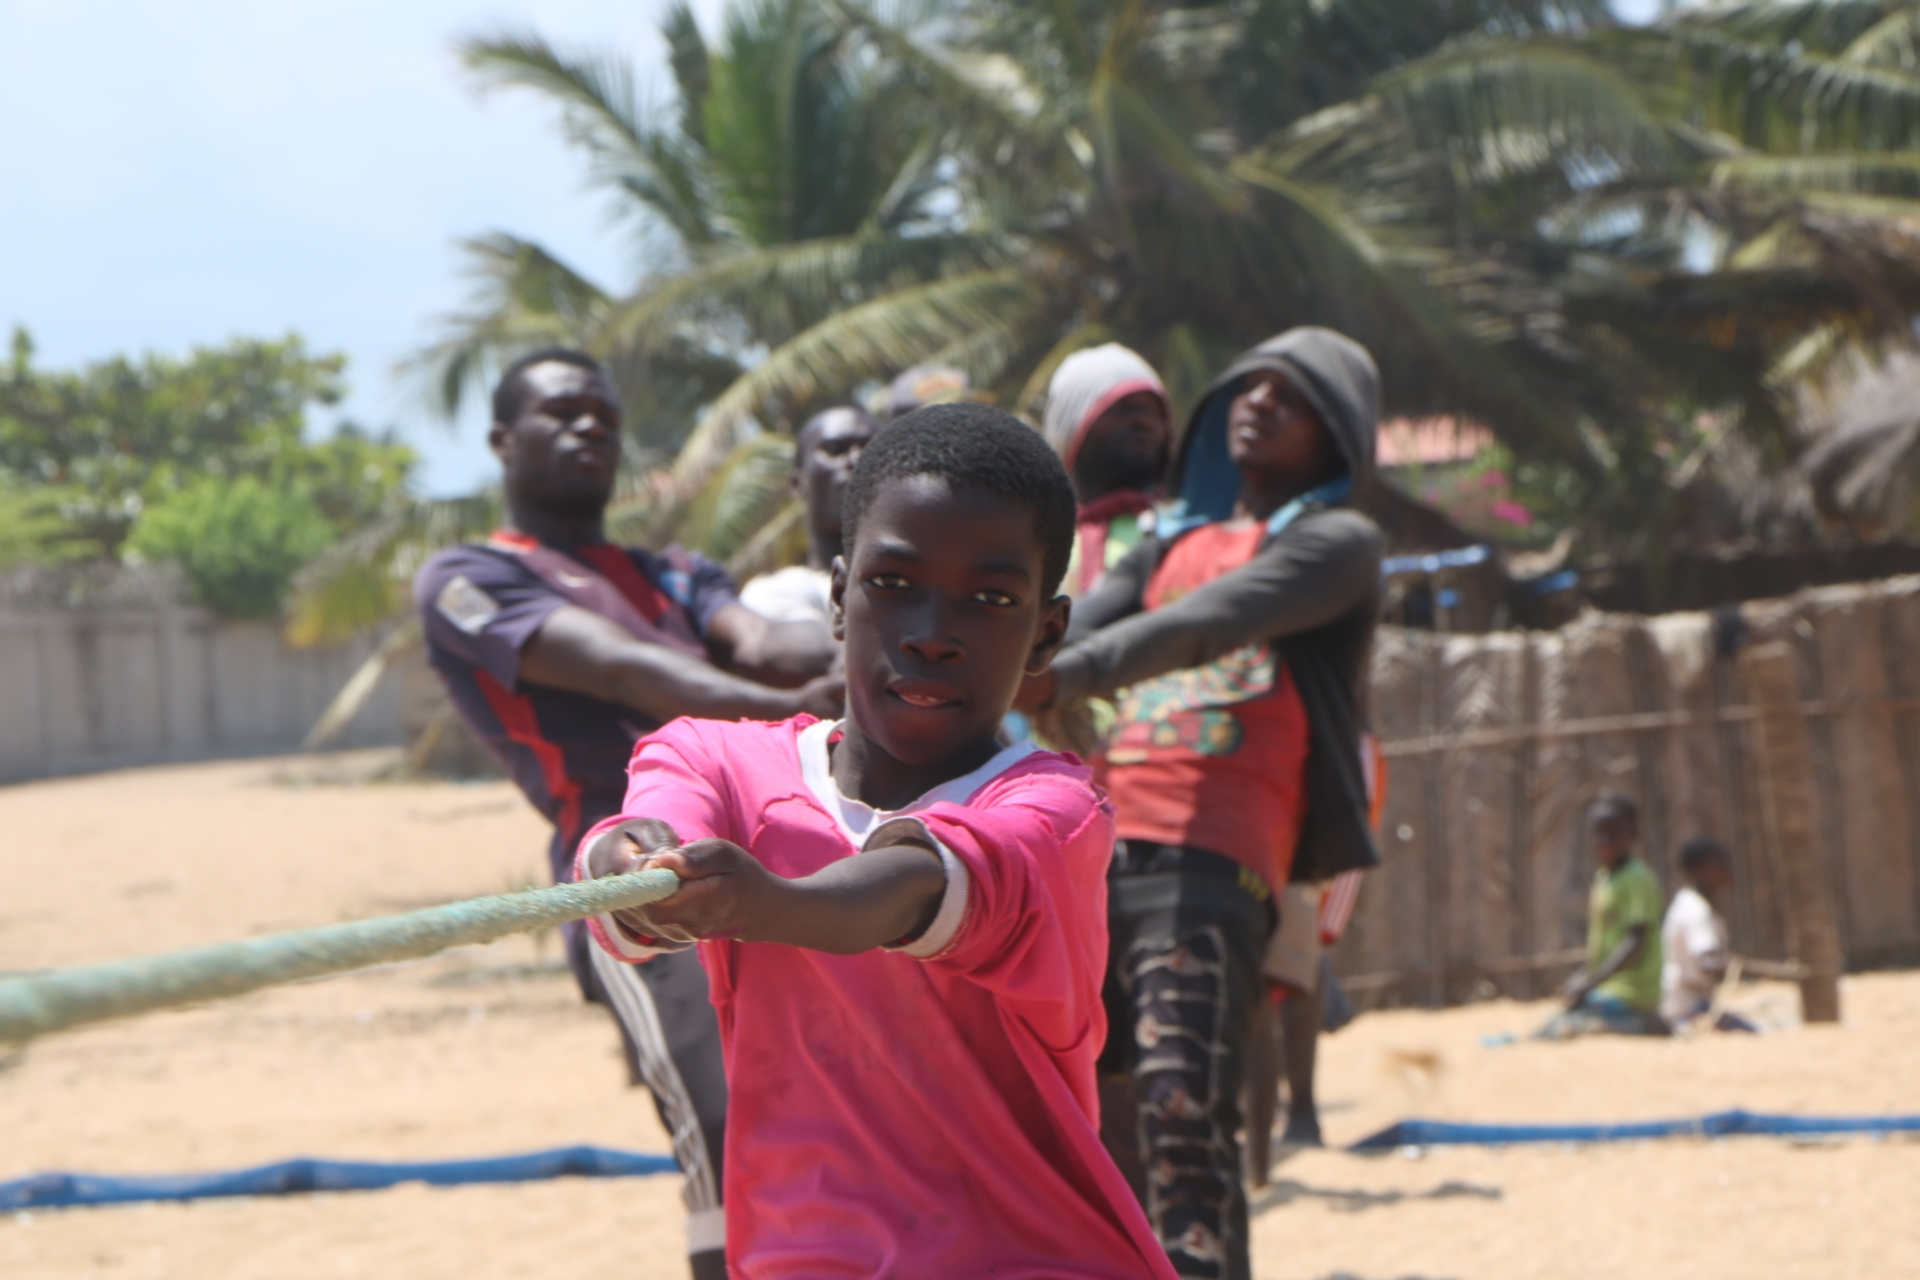 Africa, free, photo, young, people, boys, men, work, beach, fishing, lifestyle